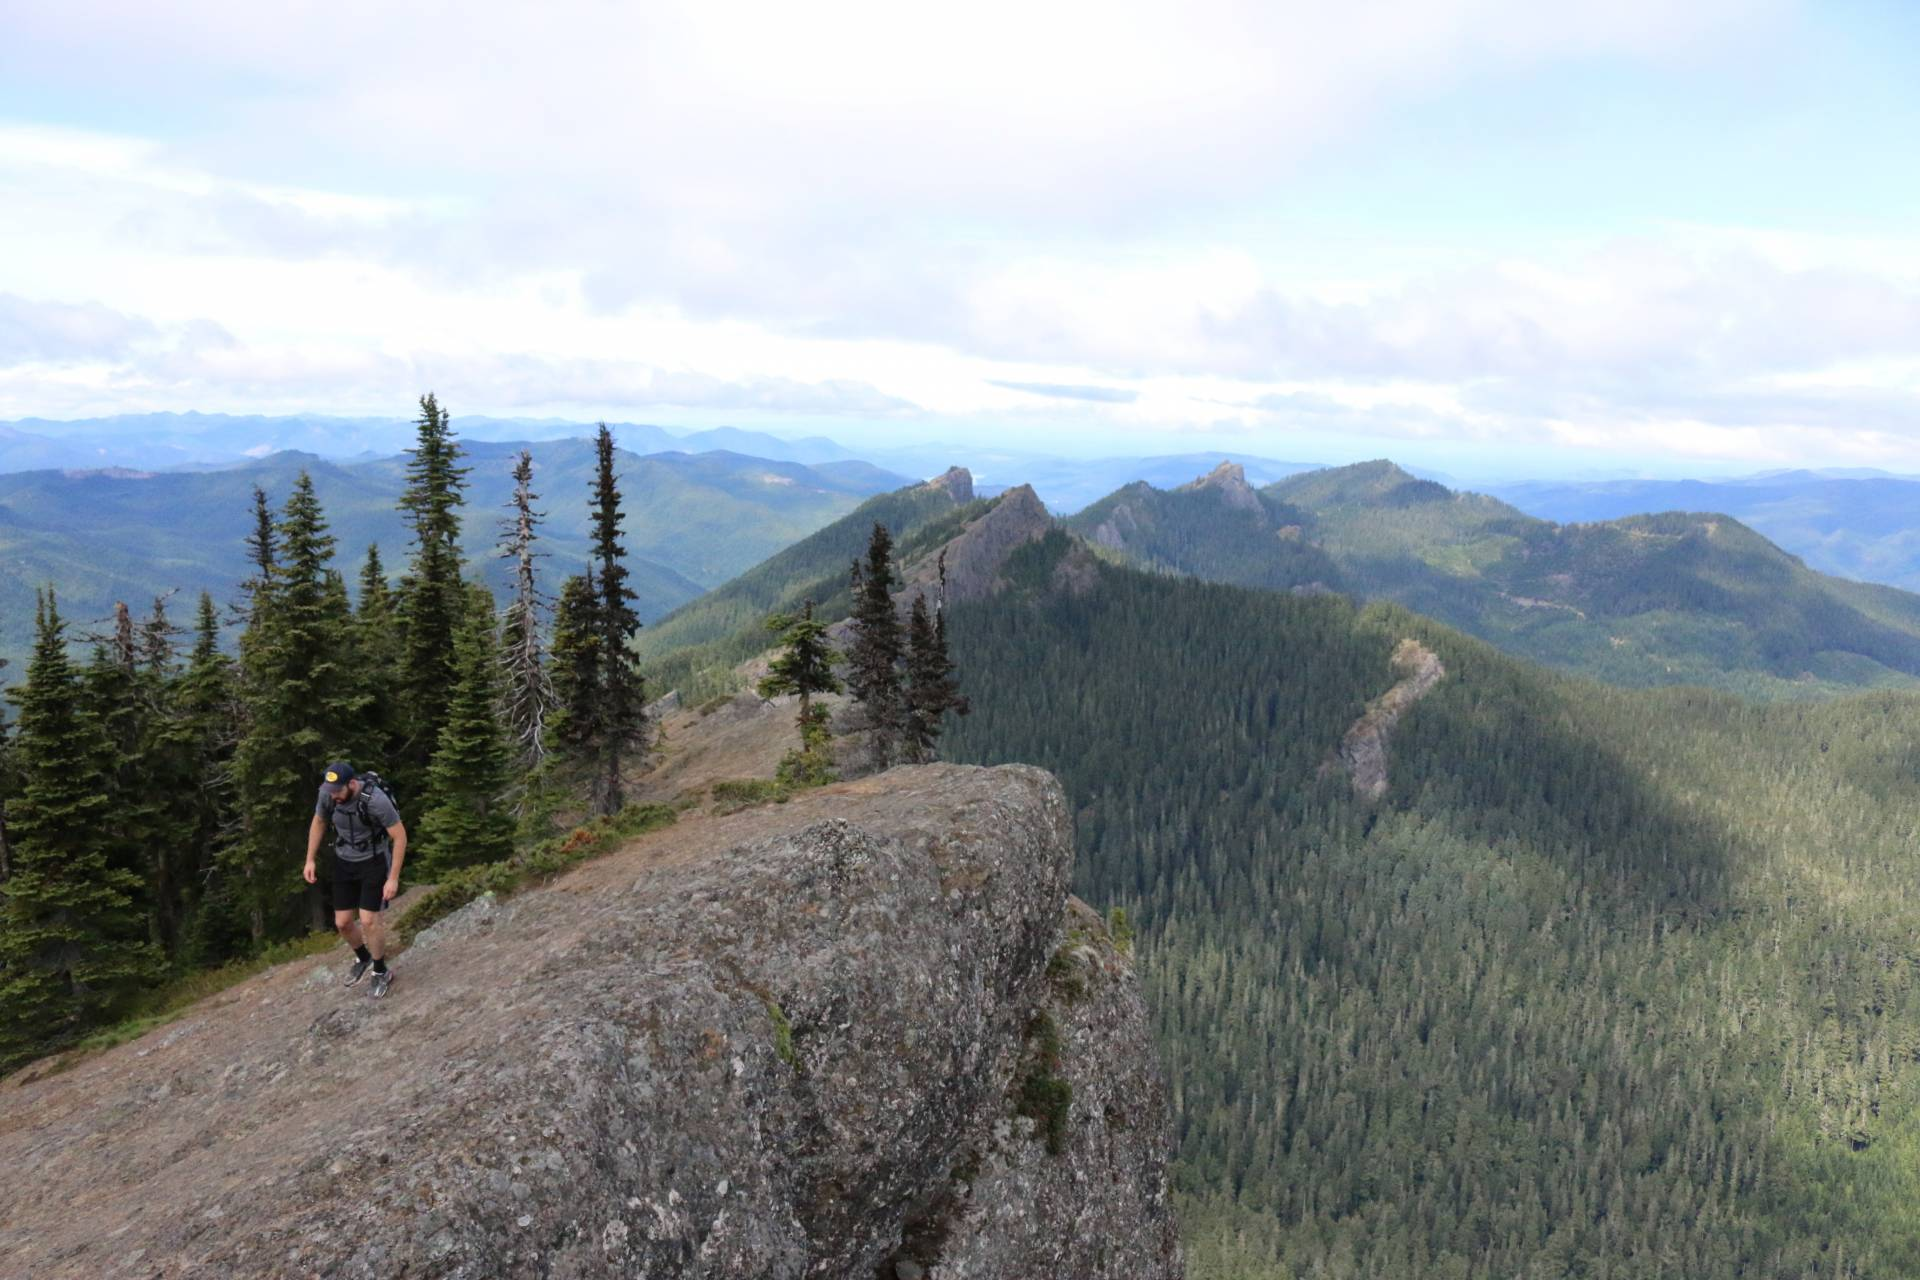 Top of High Rock Lookout Hike, Mt. Rainer WA